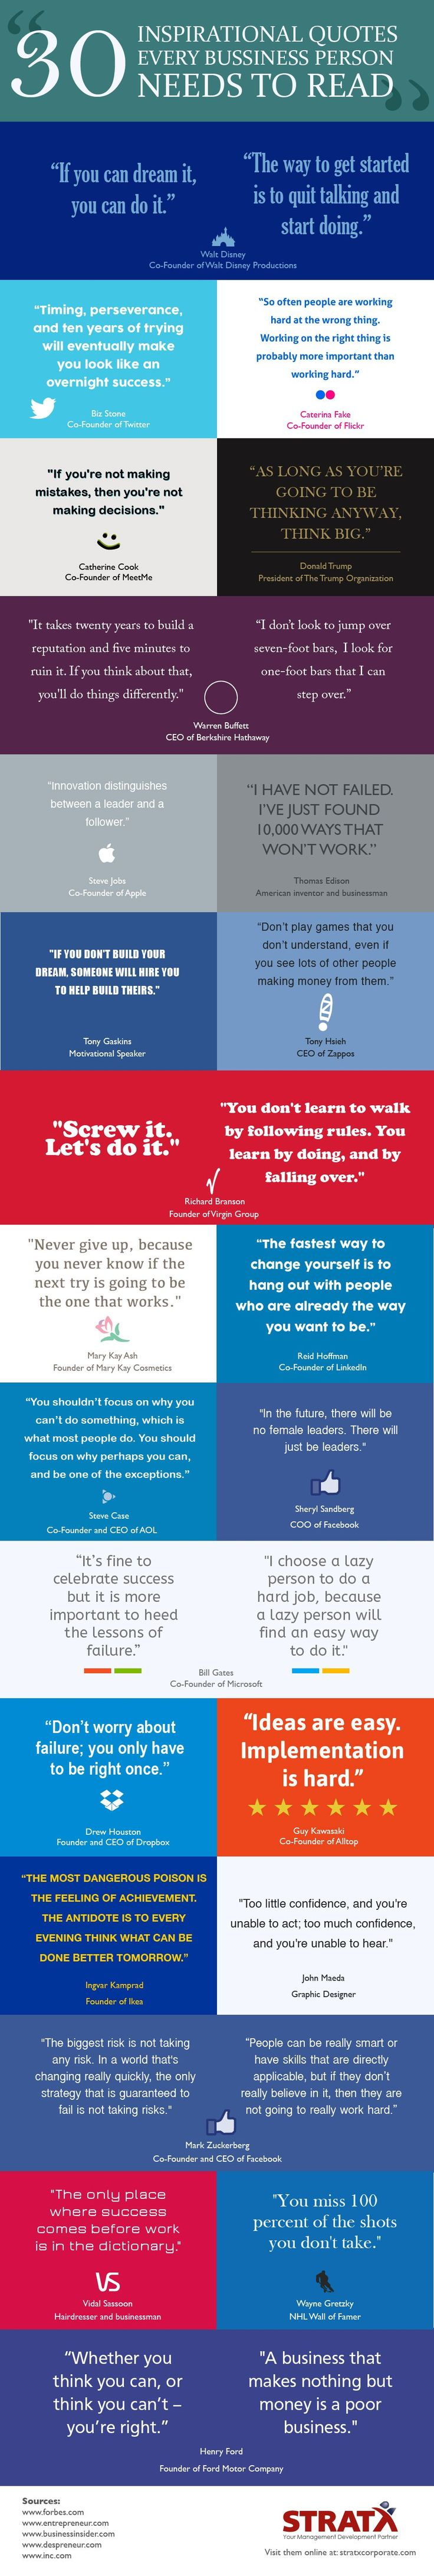 Infographic: 30 Inspirational Quotes Every Person Needs To Read - DesignTAXI.com